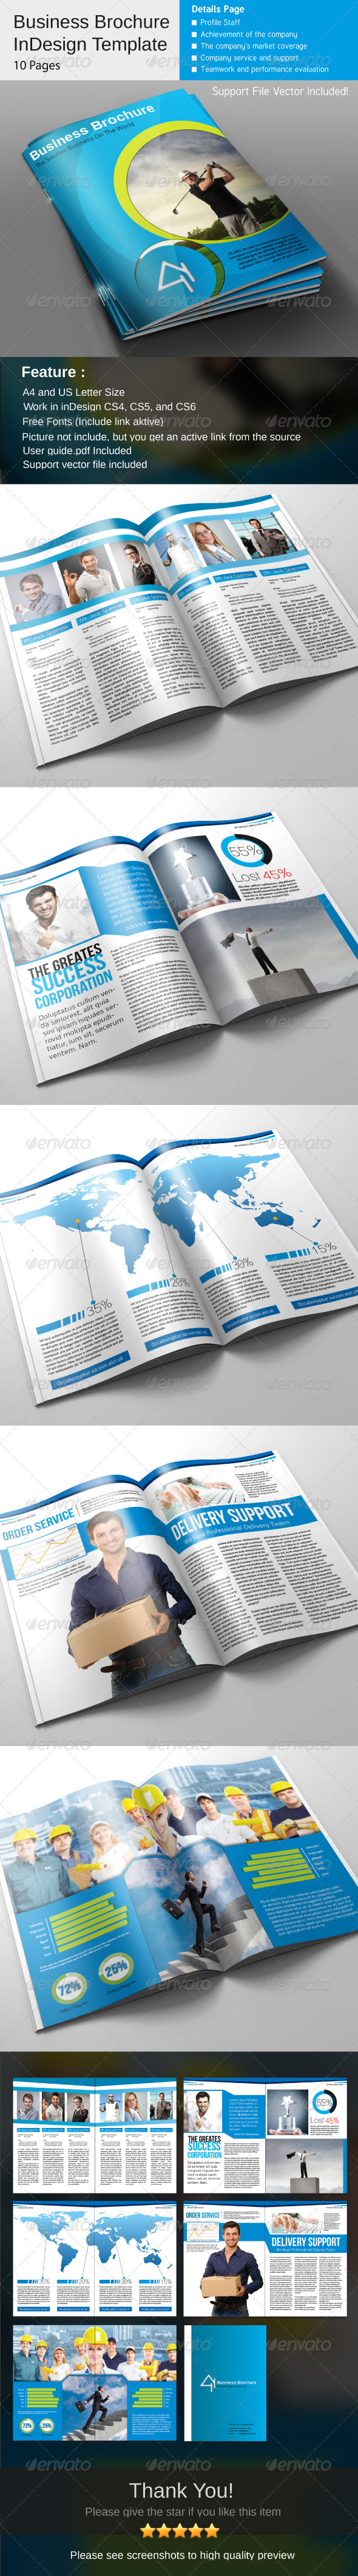 GraphicRiver Business Brochure 3902513